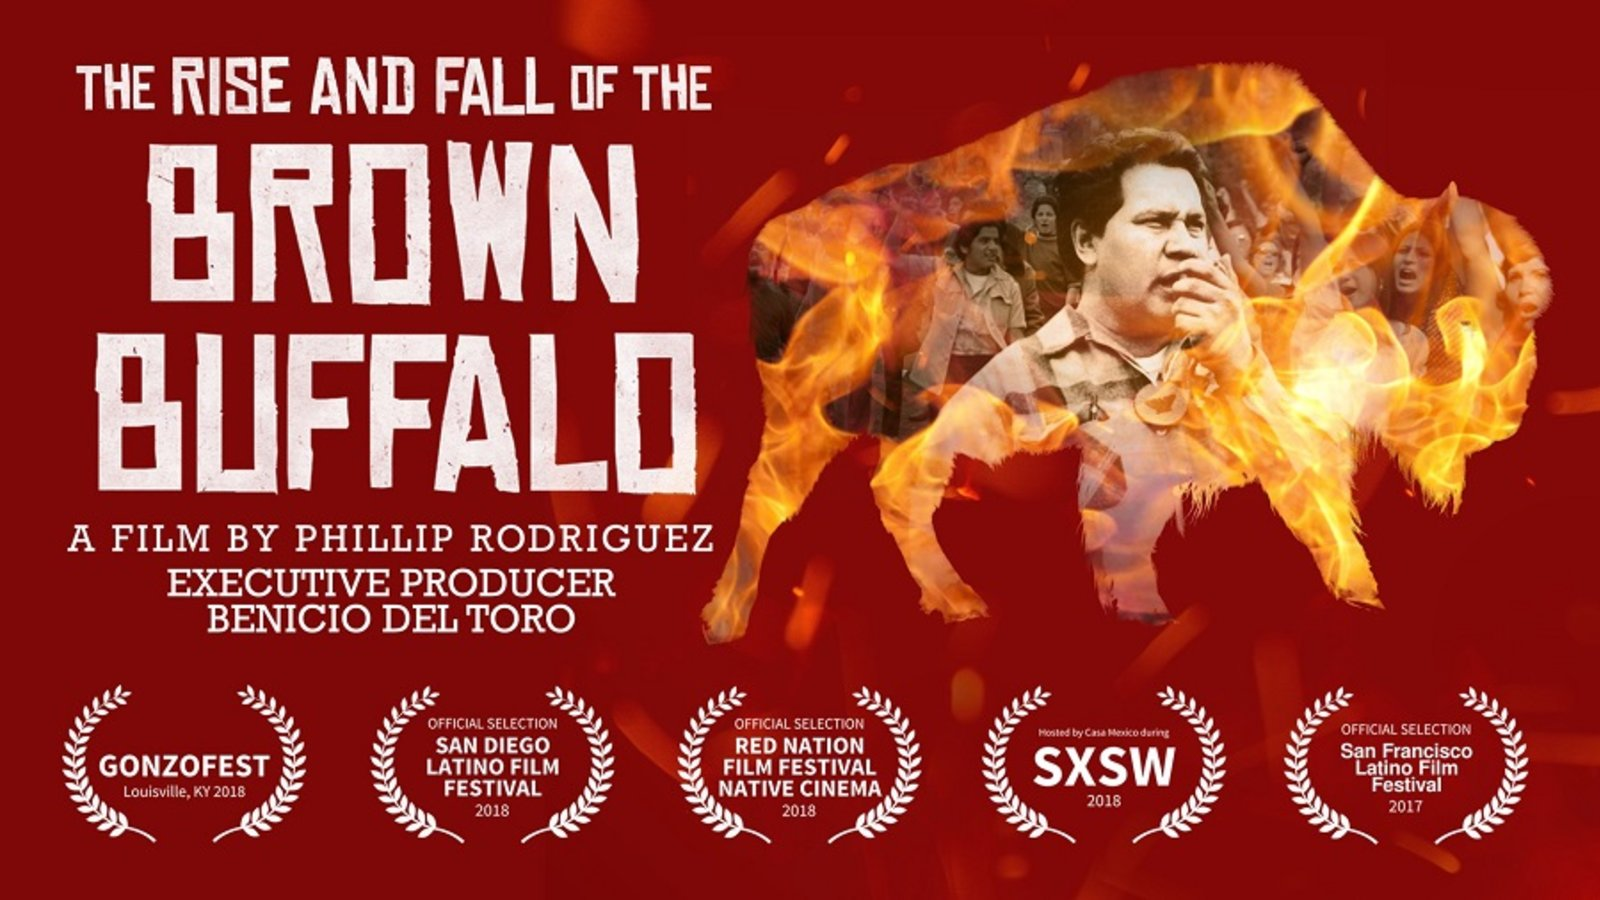 The Rise and Fall of the Brown Buffalo - Oscar Zeta Acosta: From Latino Activist to Dr. Gonzo